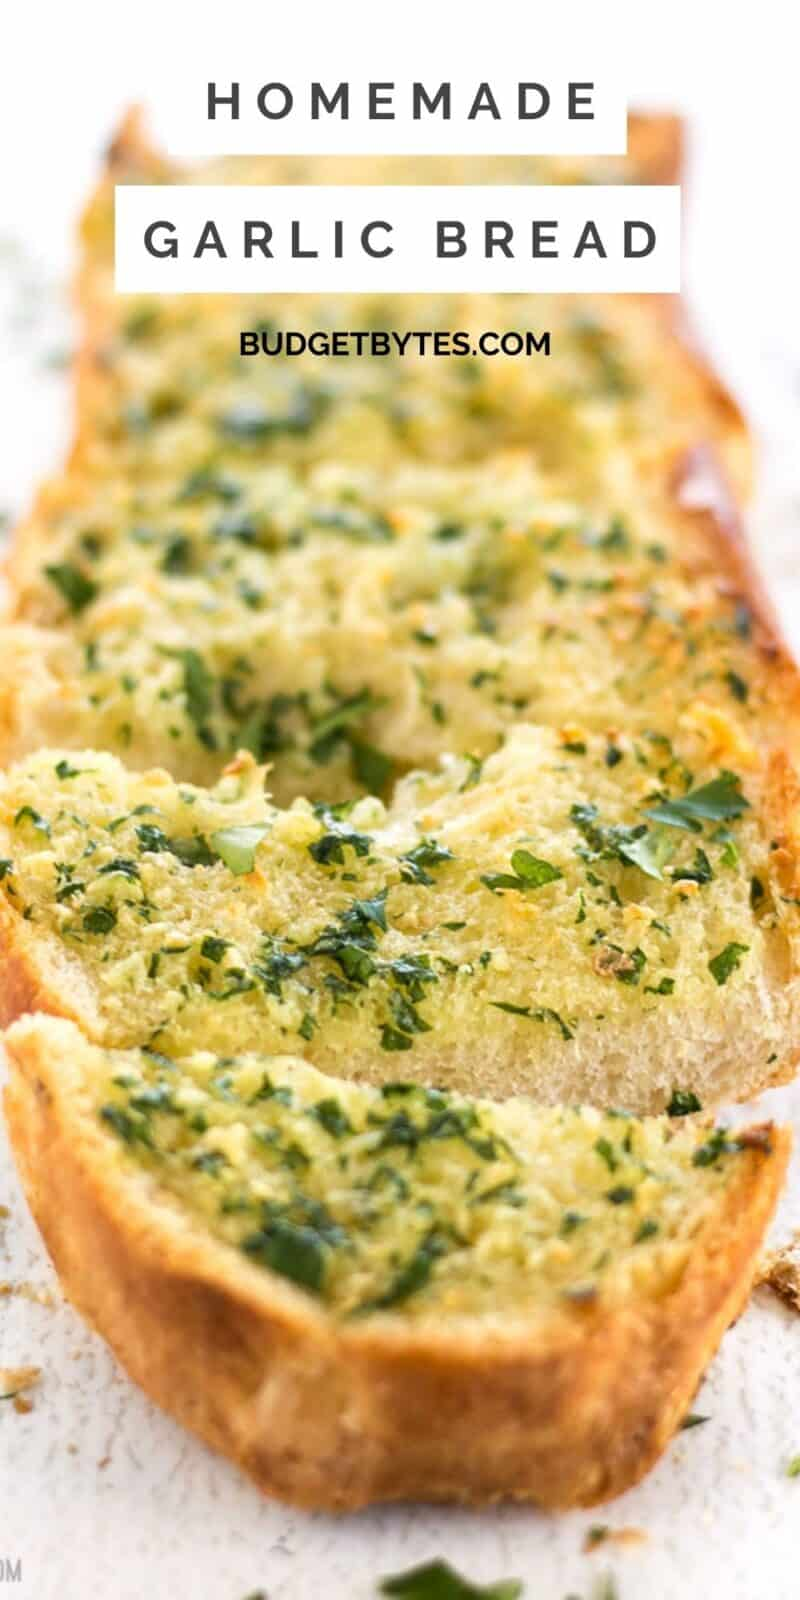 Close up front view of sliced garlic bread, title text at the top